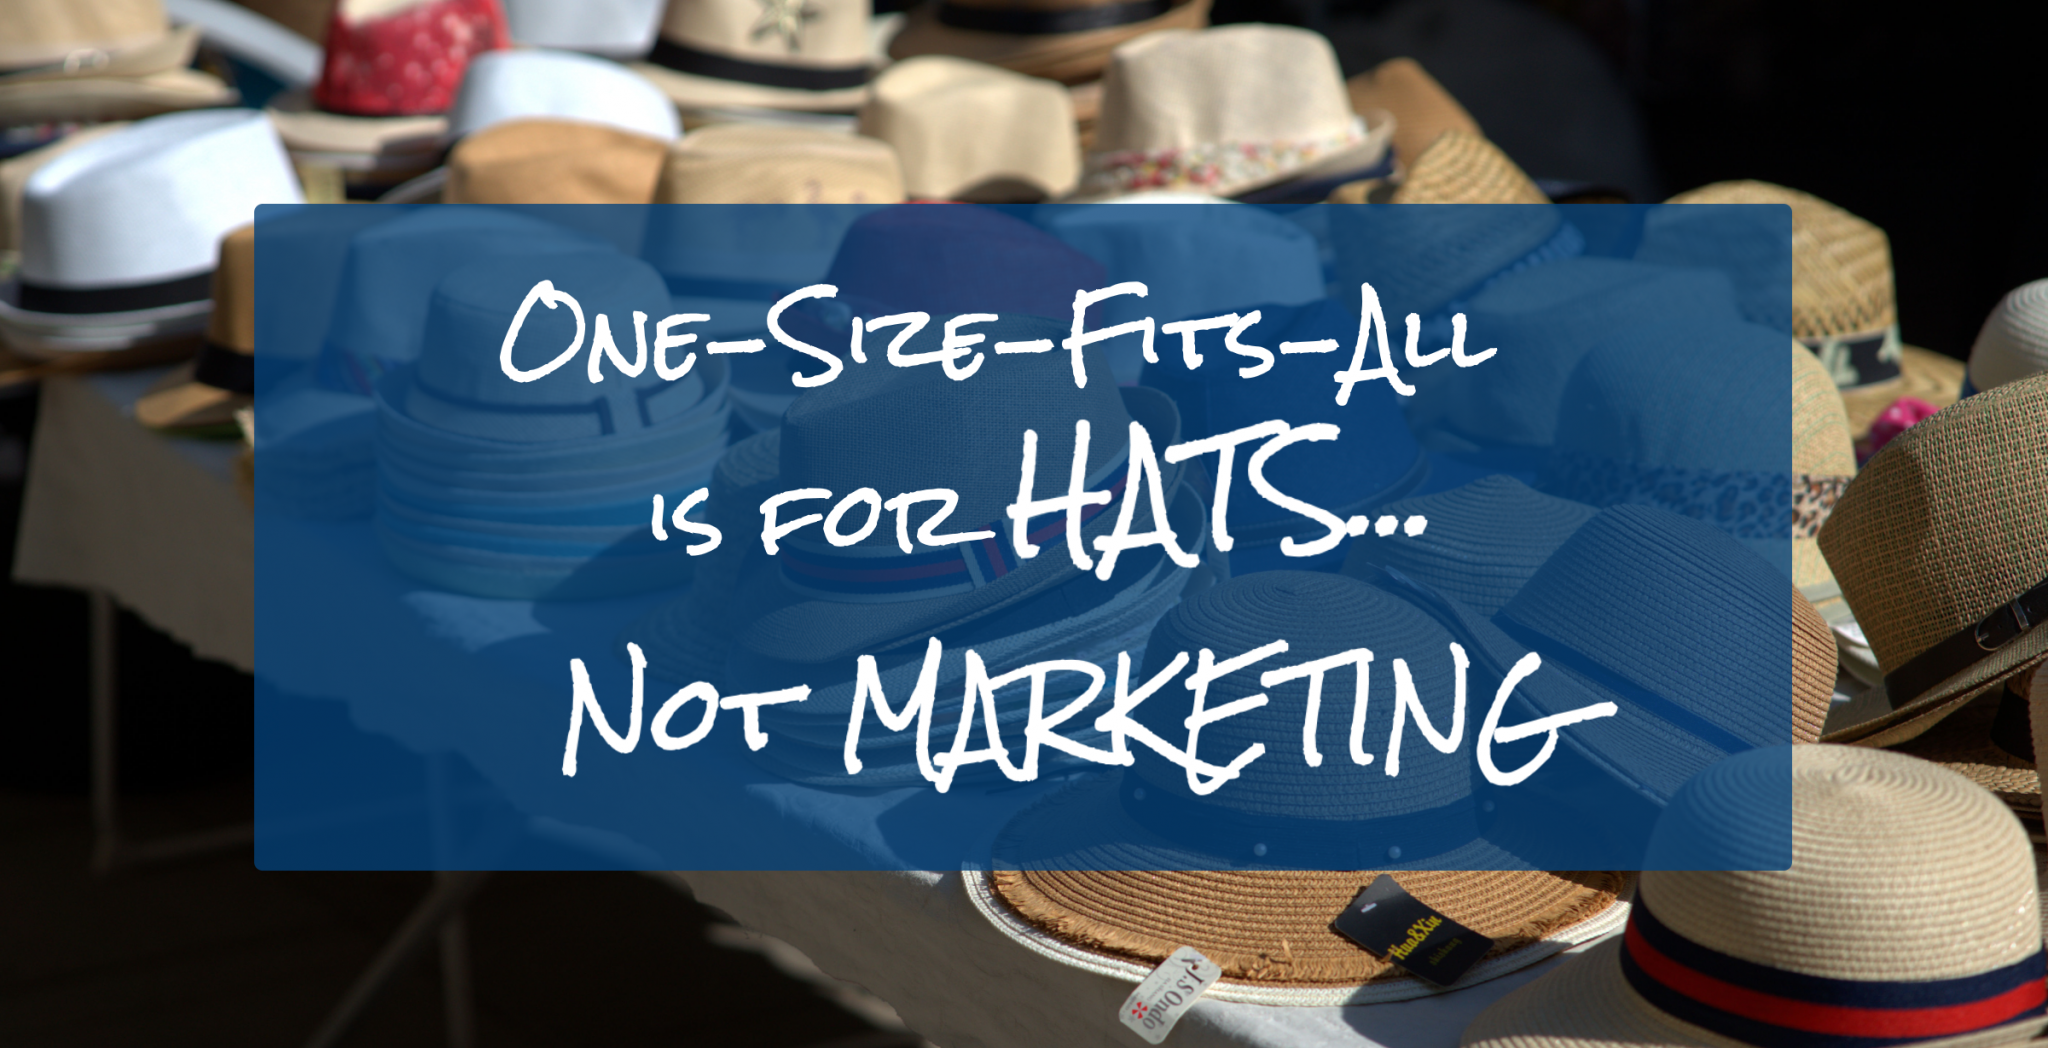 Why you should avoid One-Size-Fits-All marketing 10